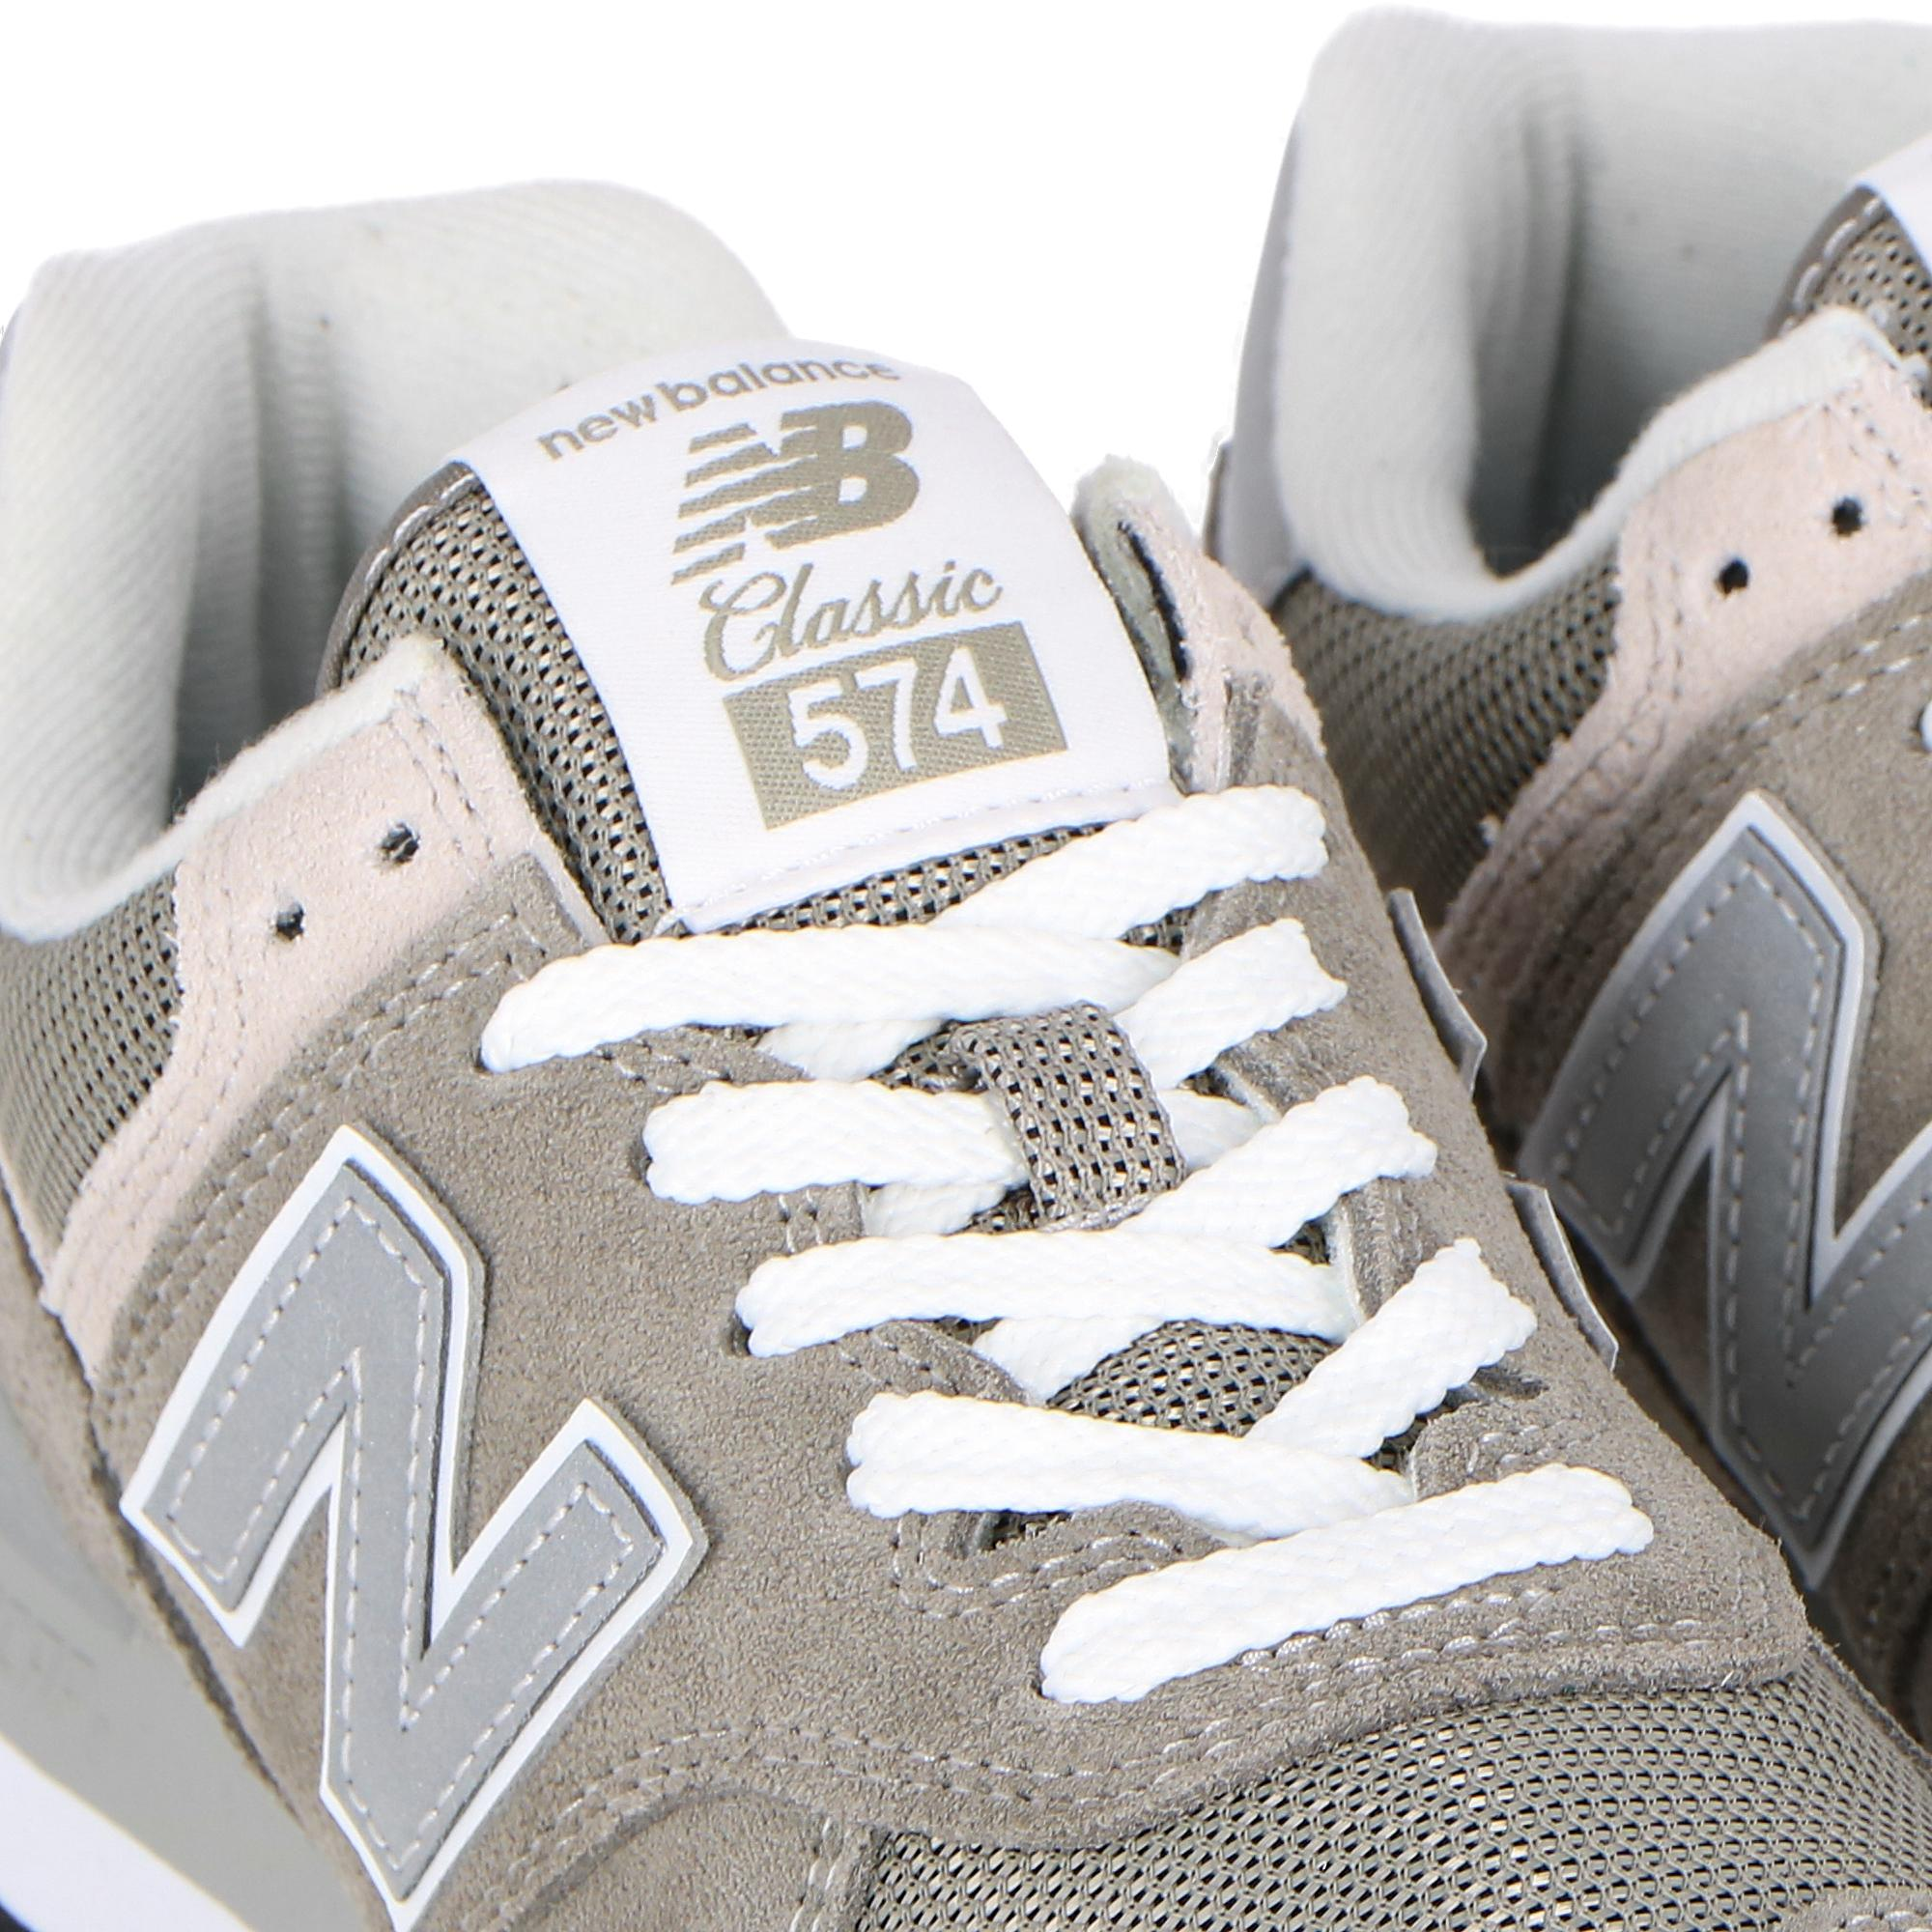 plus récent 30afa 639a1 NEW BALANCE 574